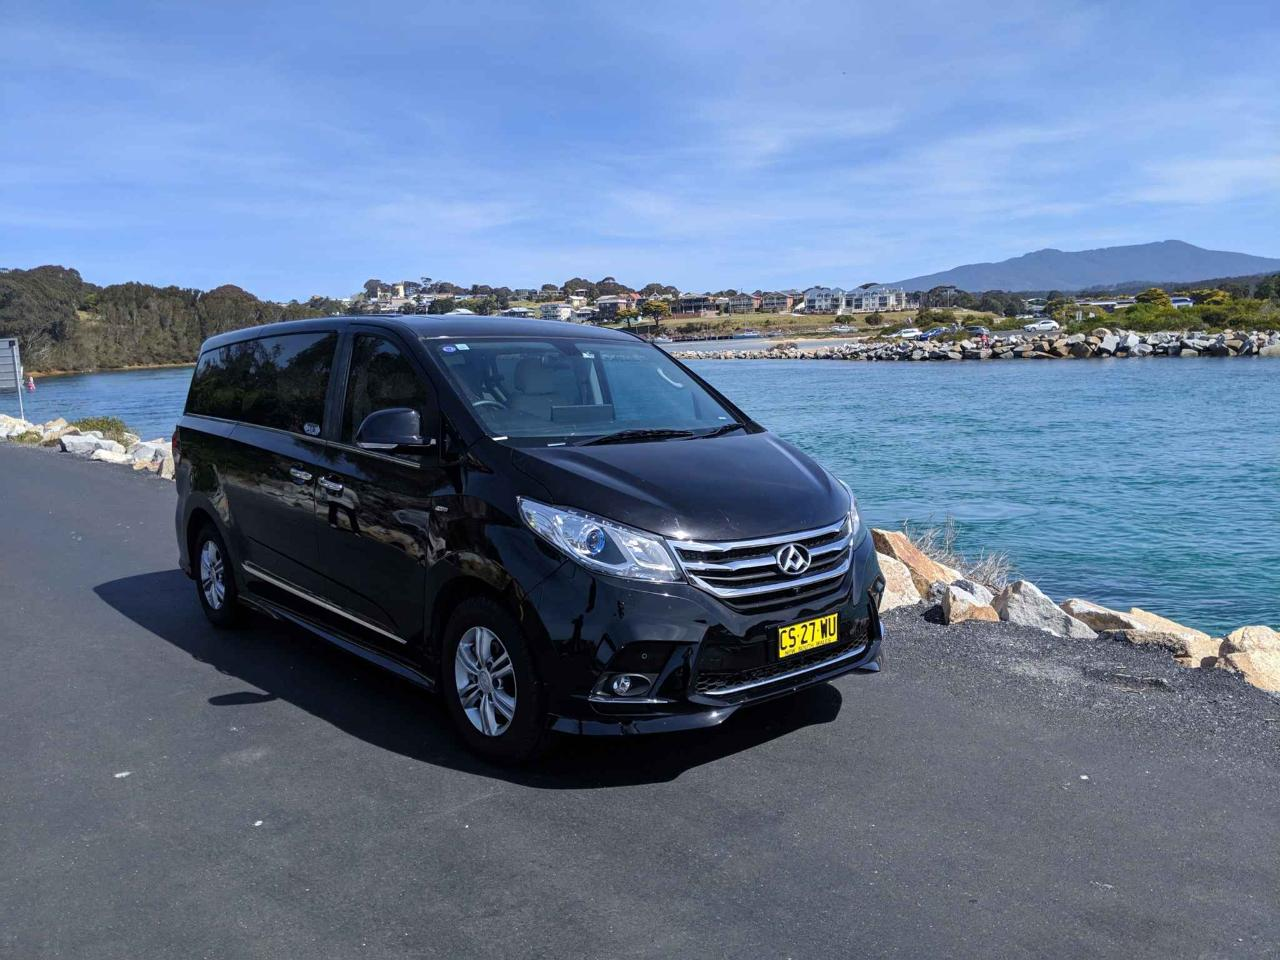 PRIVATE CHARTER | 7 Seater Luxury Vehicle with Driver/Guide - 8 Hours